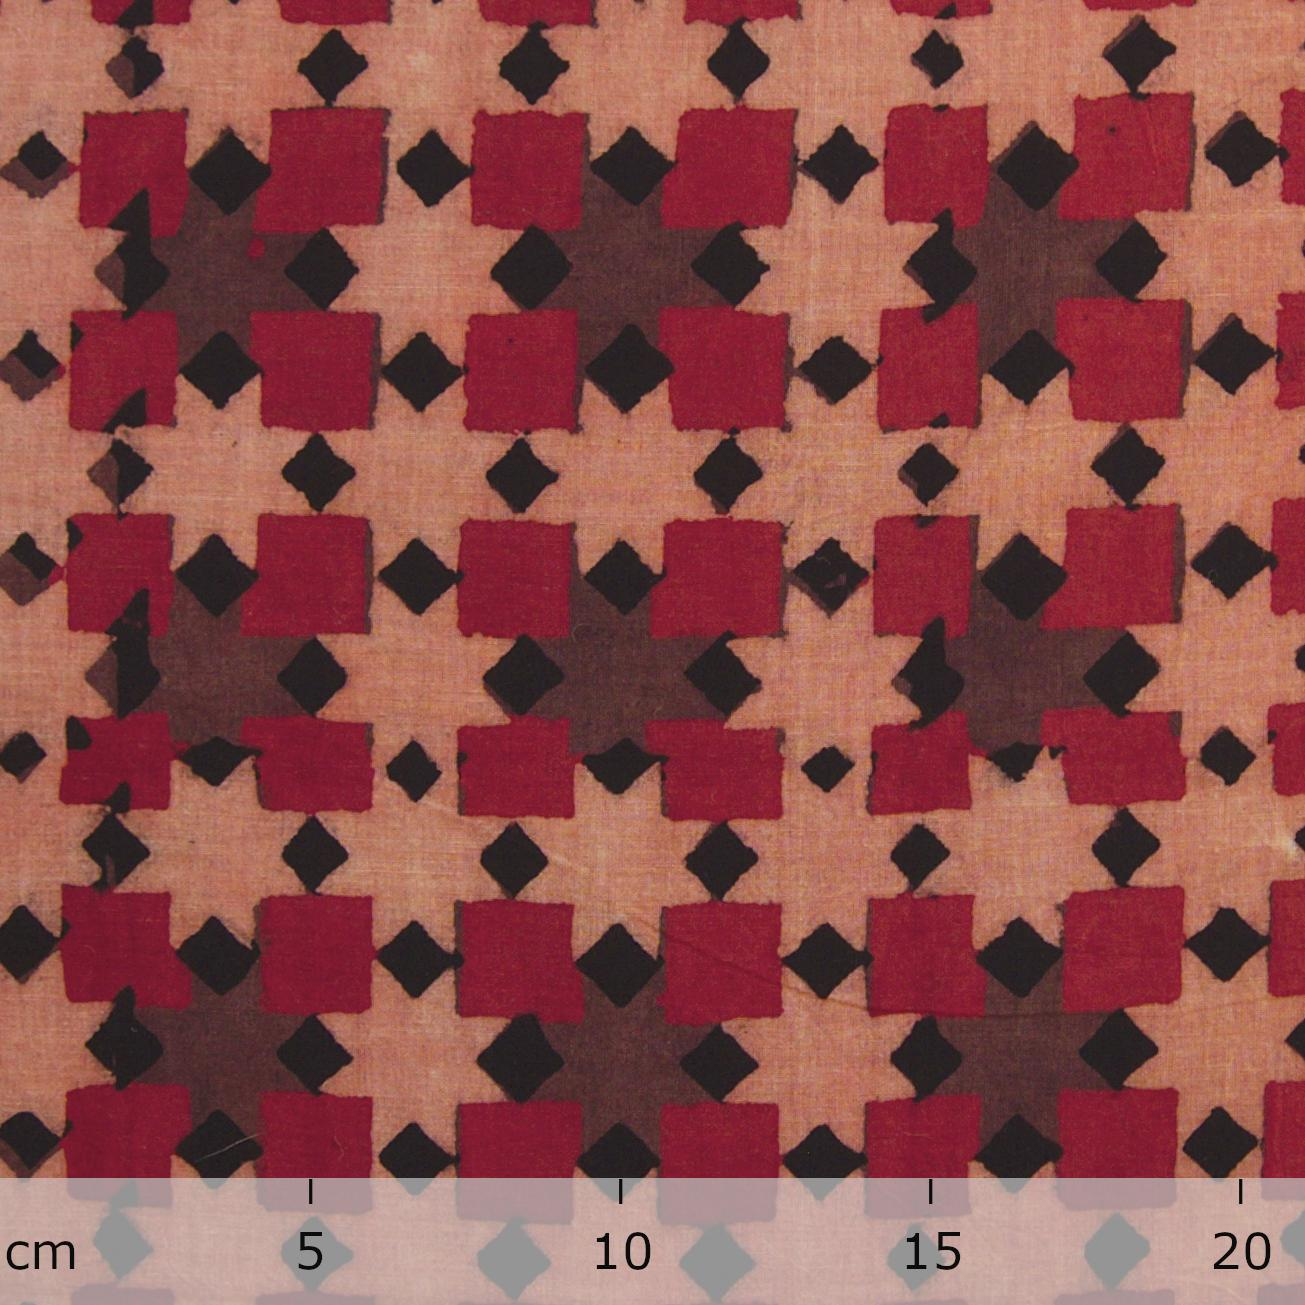 Block Printed Fabric, 100% Cotton, Ajrak Design: Pink Base, Black, Madder Root Red, Purple Square. Ruler